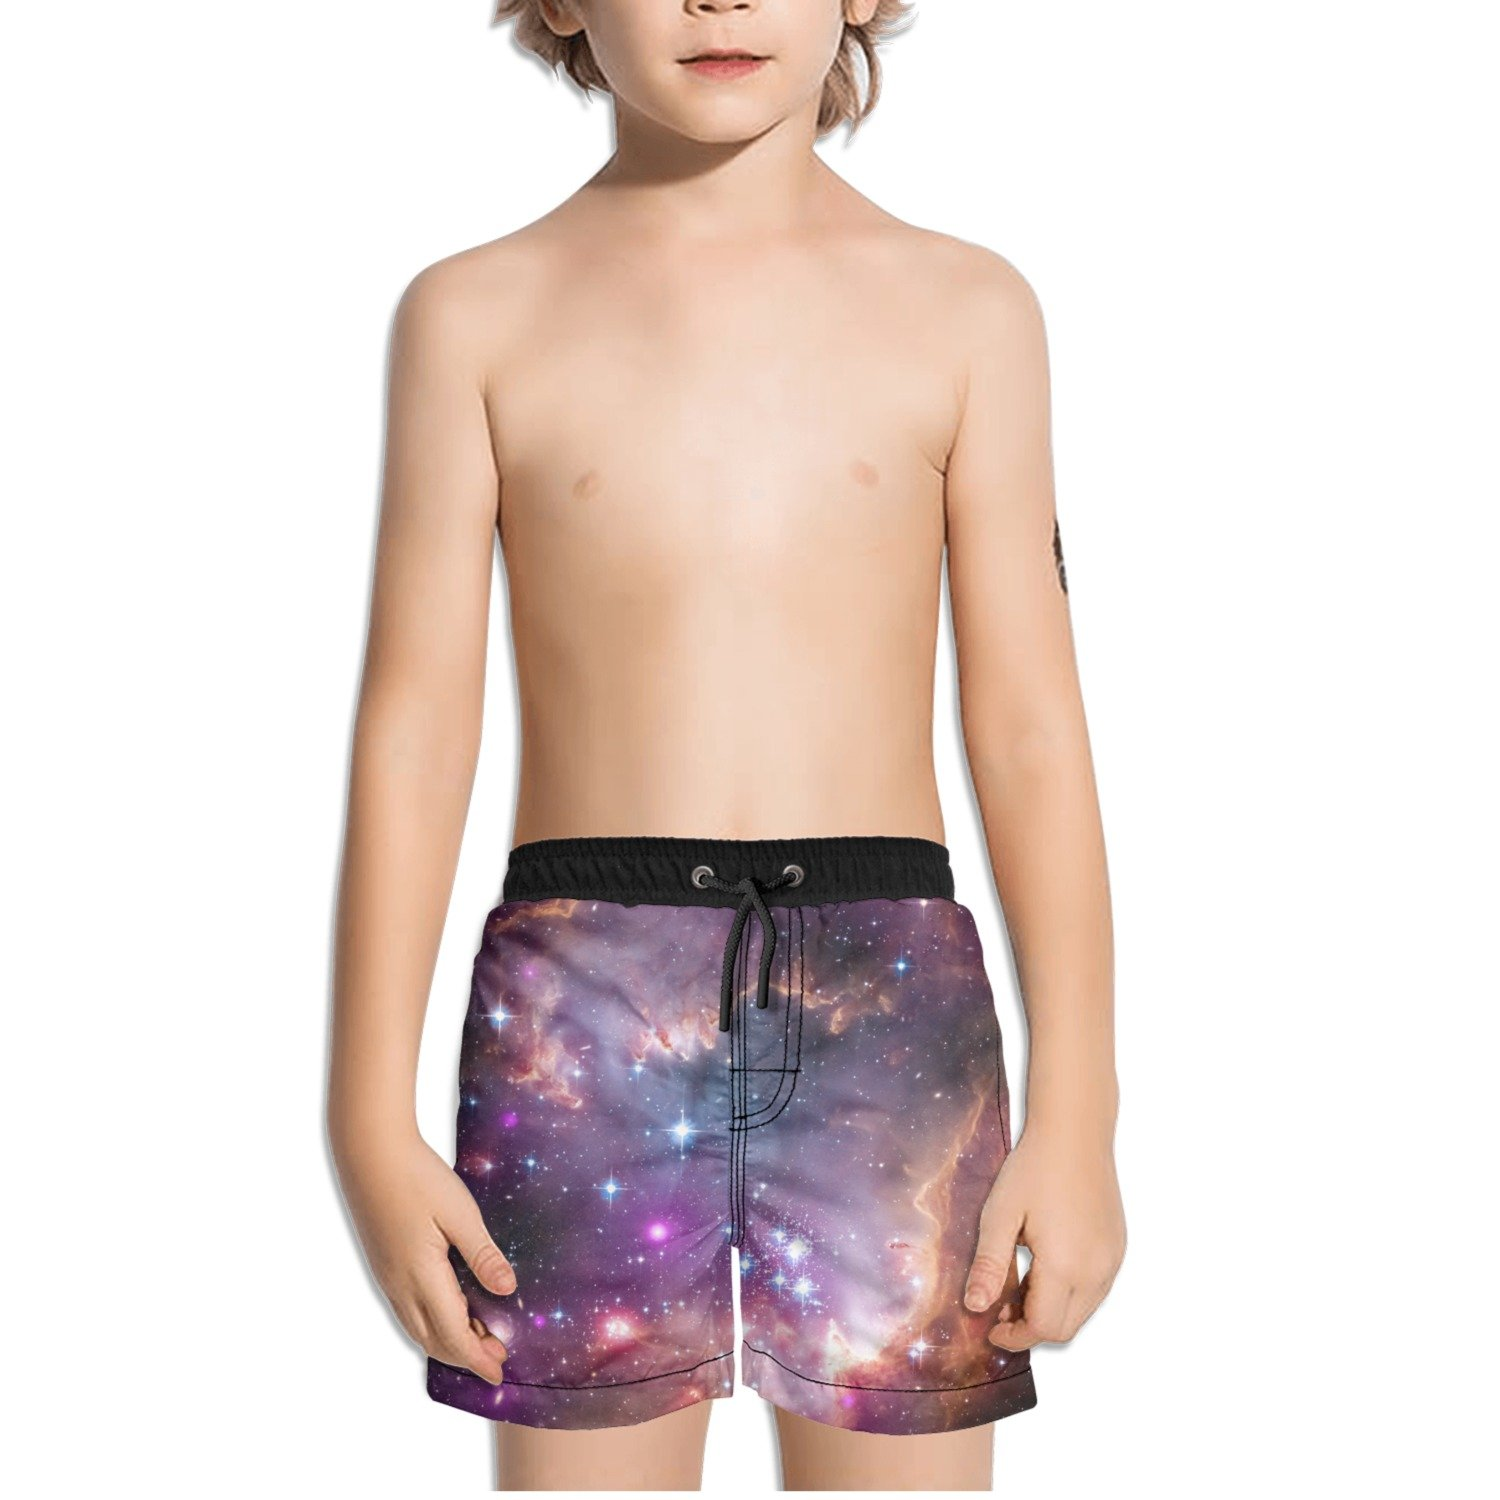 FullBo Nebula Astronomy Galaxy Space Purple Little Boys Short Swim Trunks Quick Dry Beach Shorts